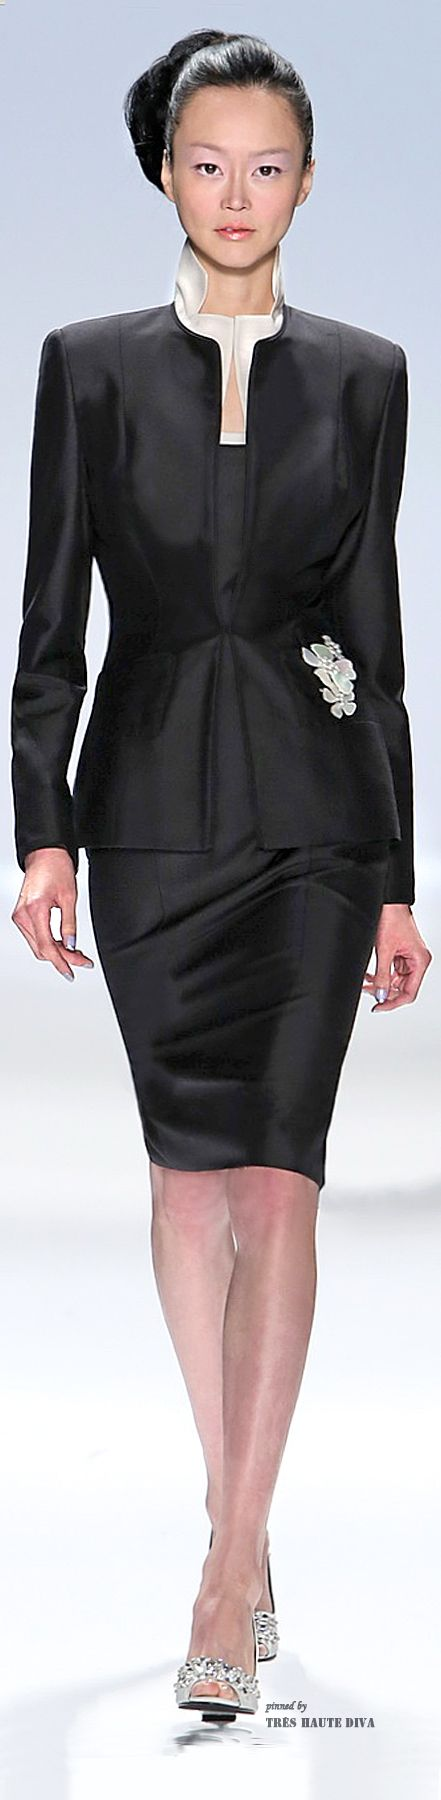 Zang Toi Fall/Winter 2013